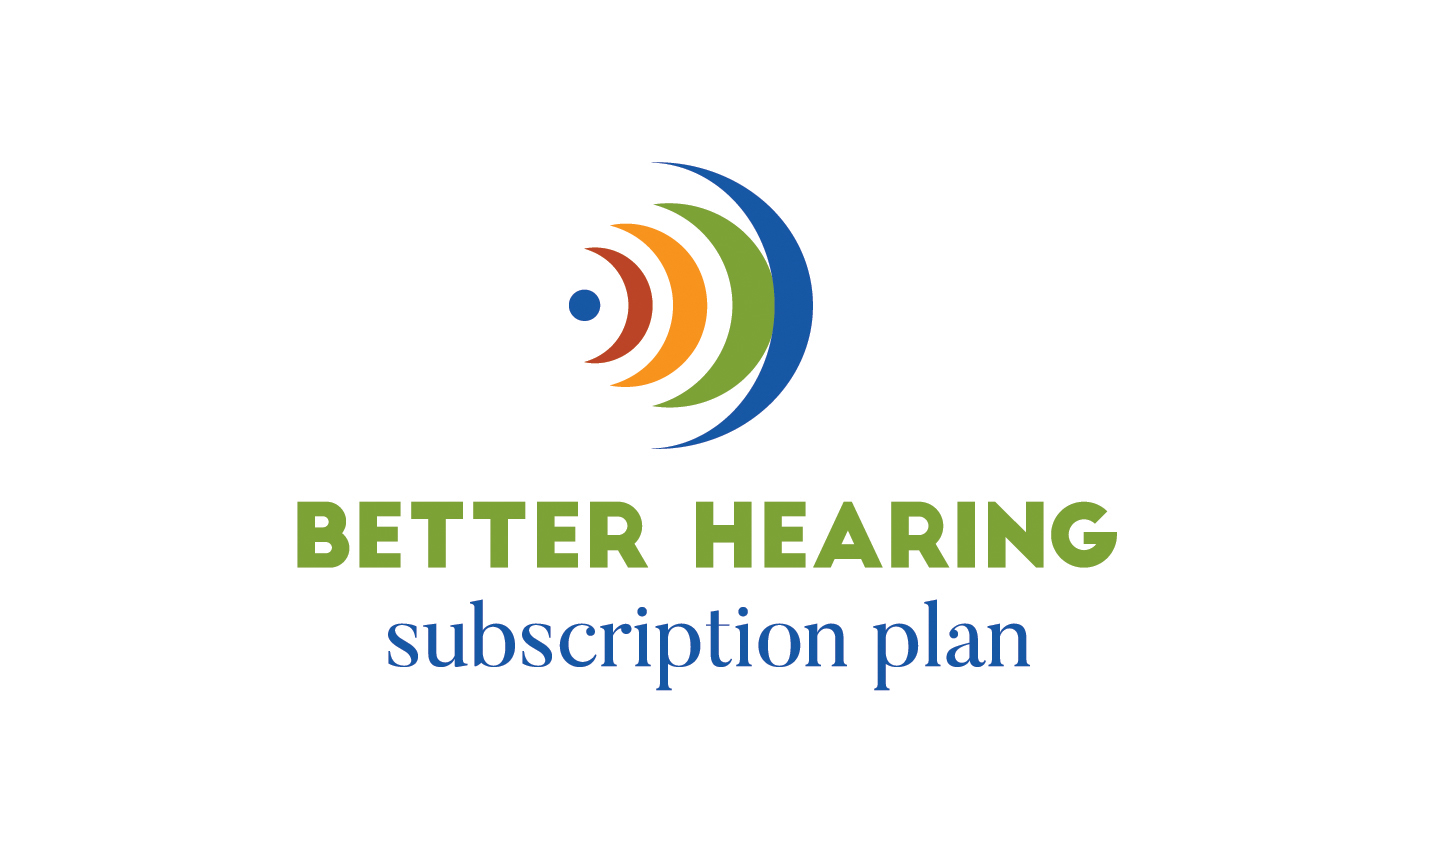 HEARS_Better_Hearing_Subscription_Plan_CMYK[1].jpg